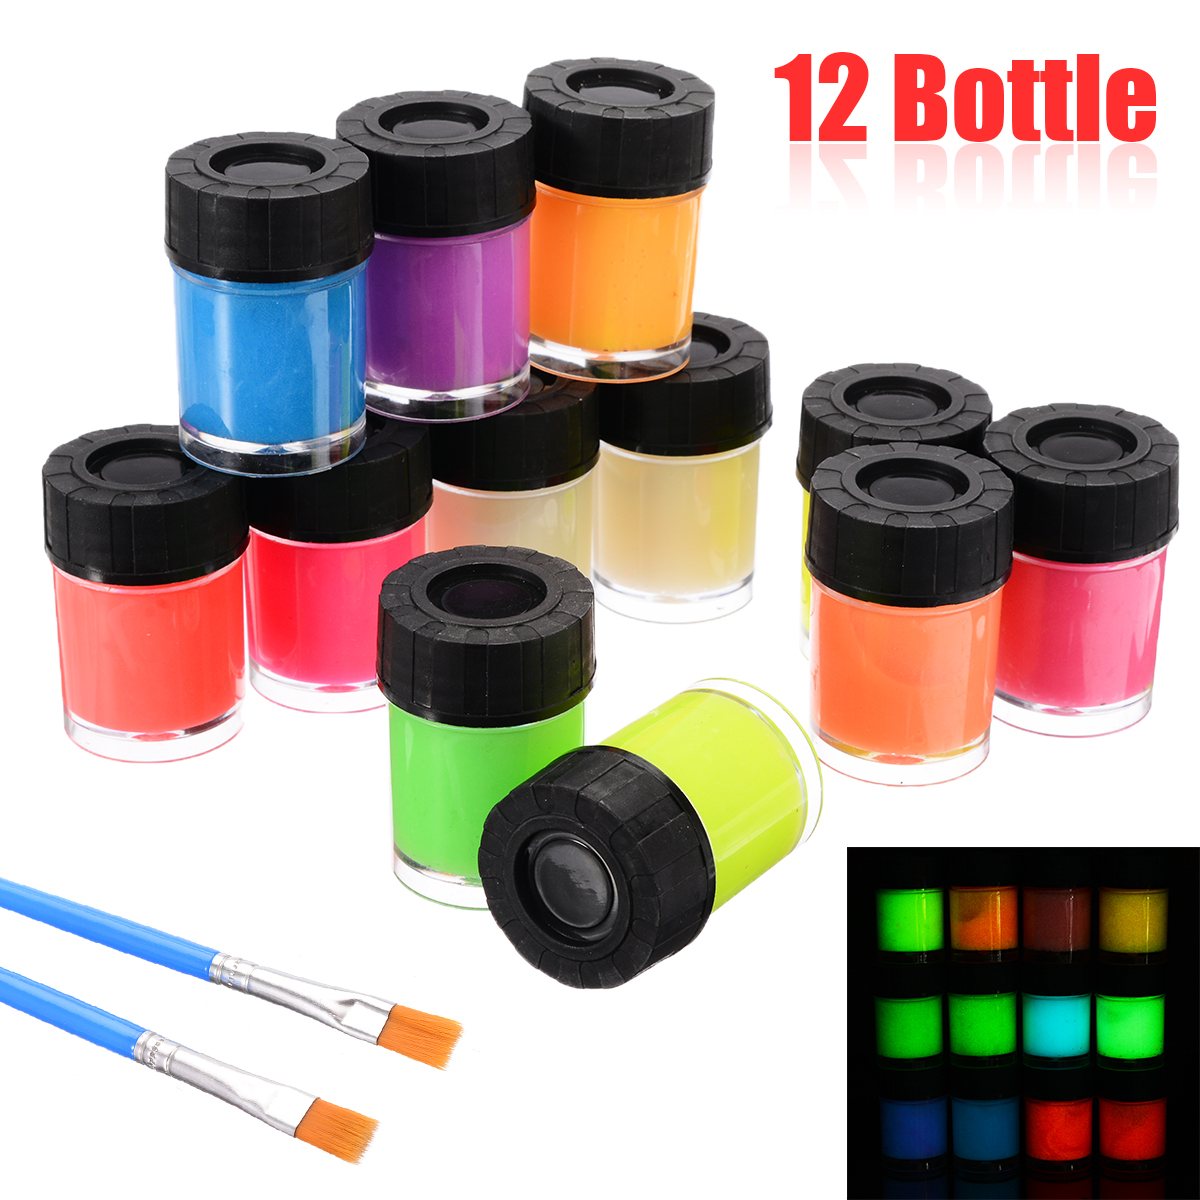 12 Bottle Fluorescent Paint New Neon Luminous Acrylic Paint Glow In The Dark Pigment Set & 2 Brush For Paper Plaster Walls